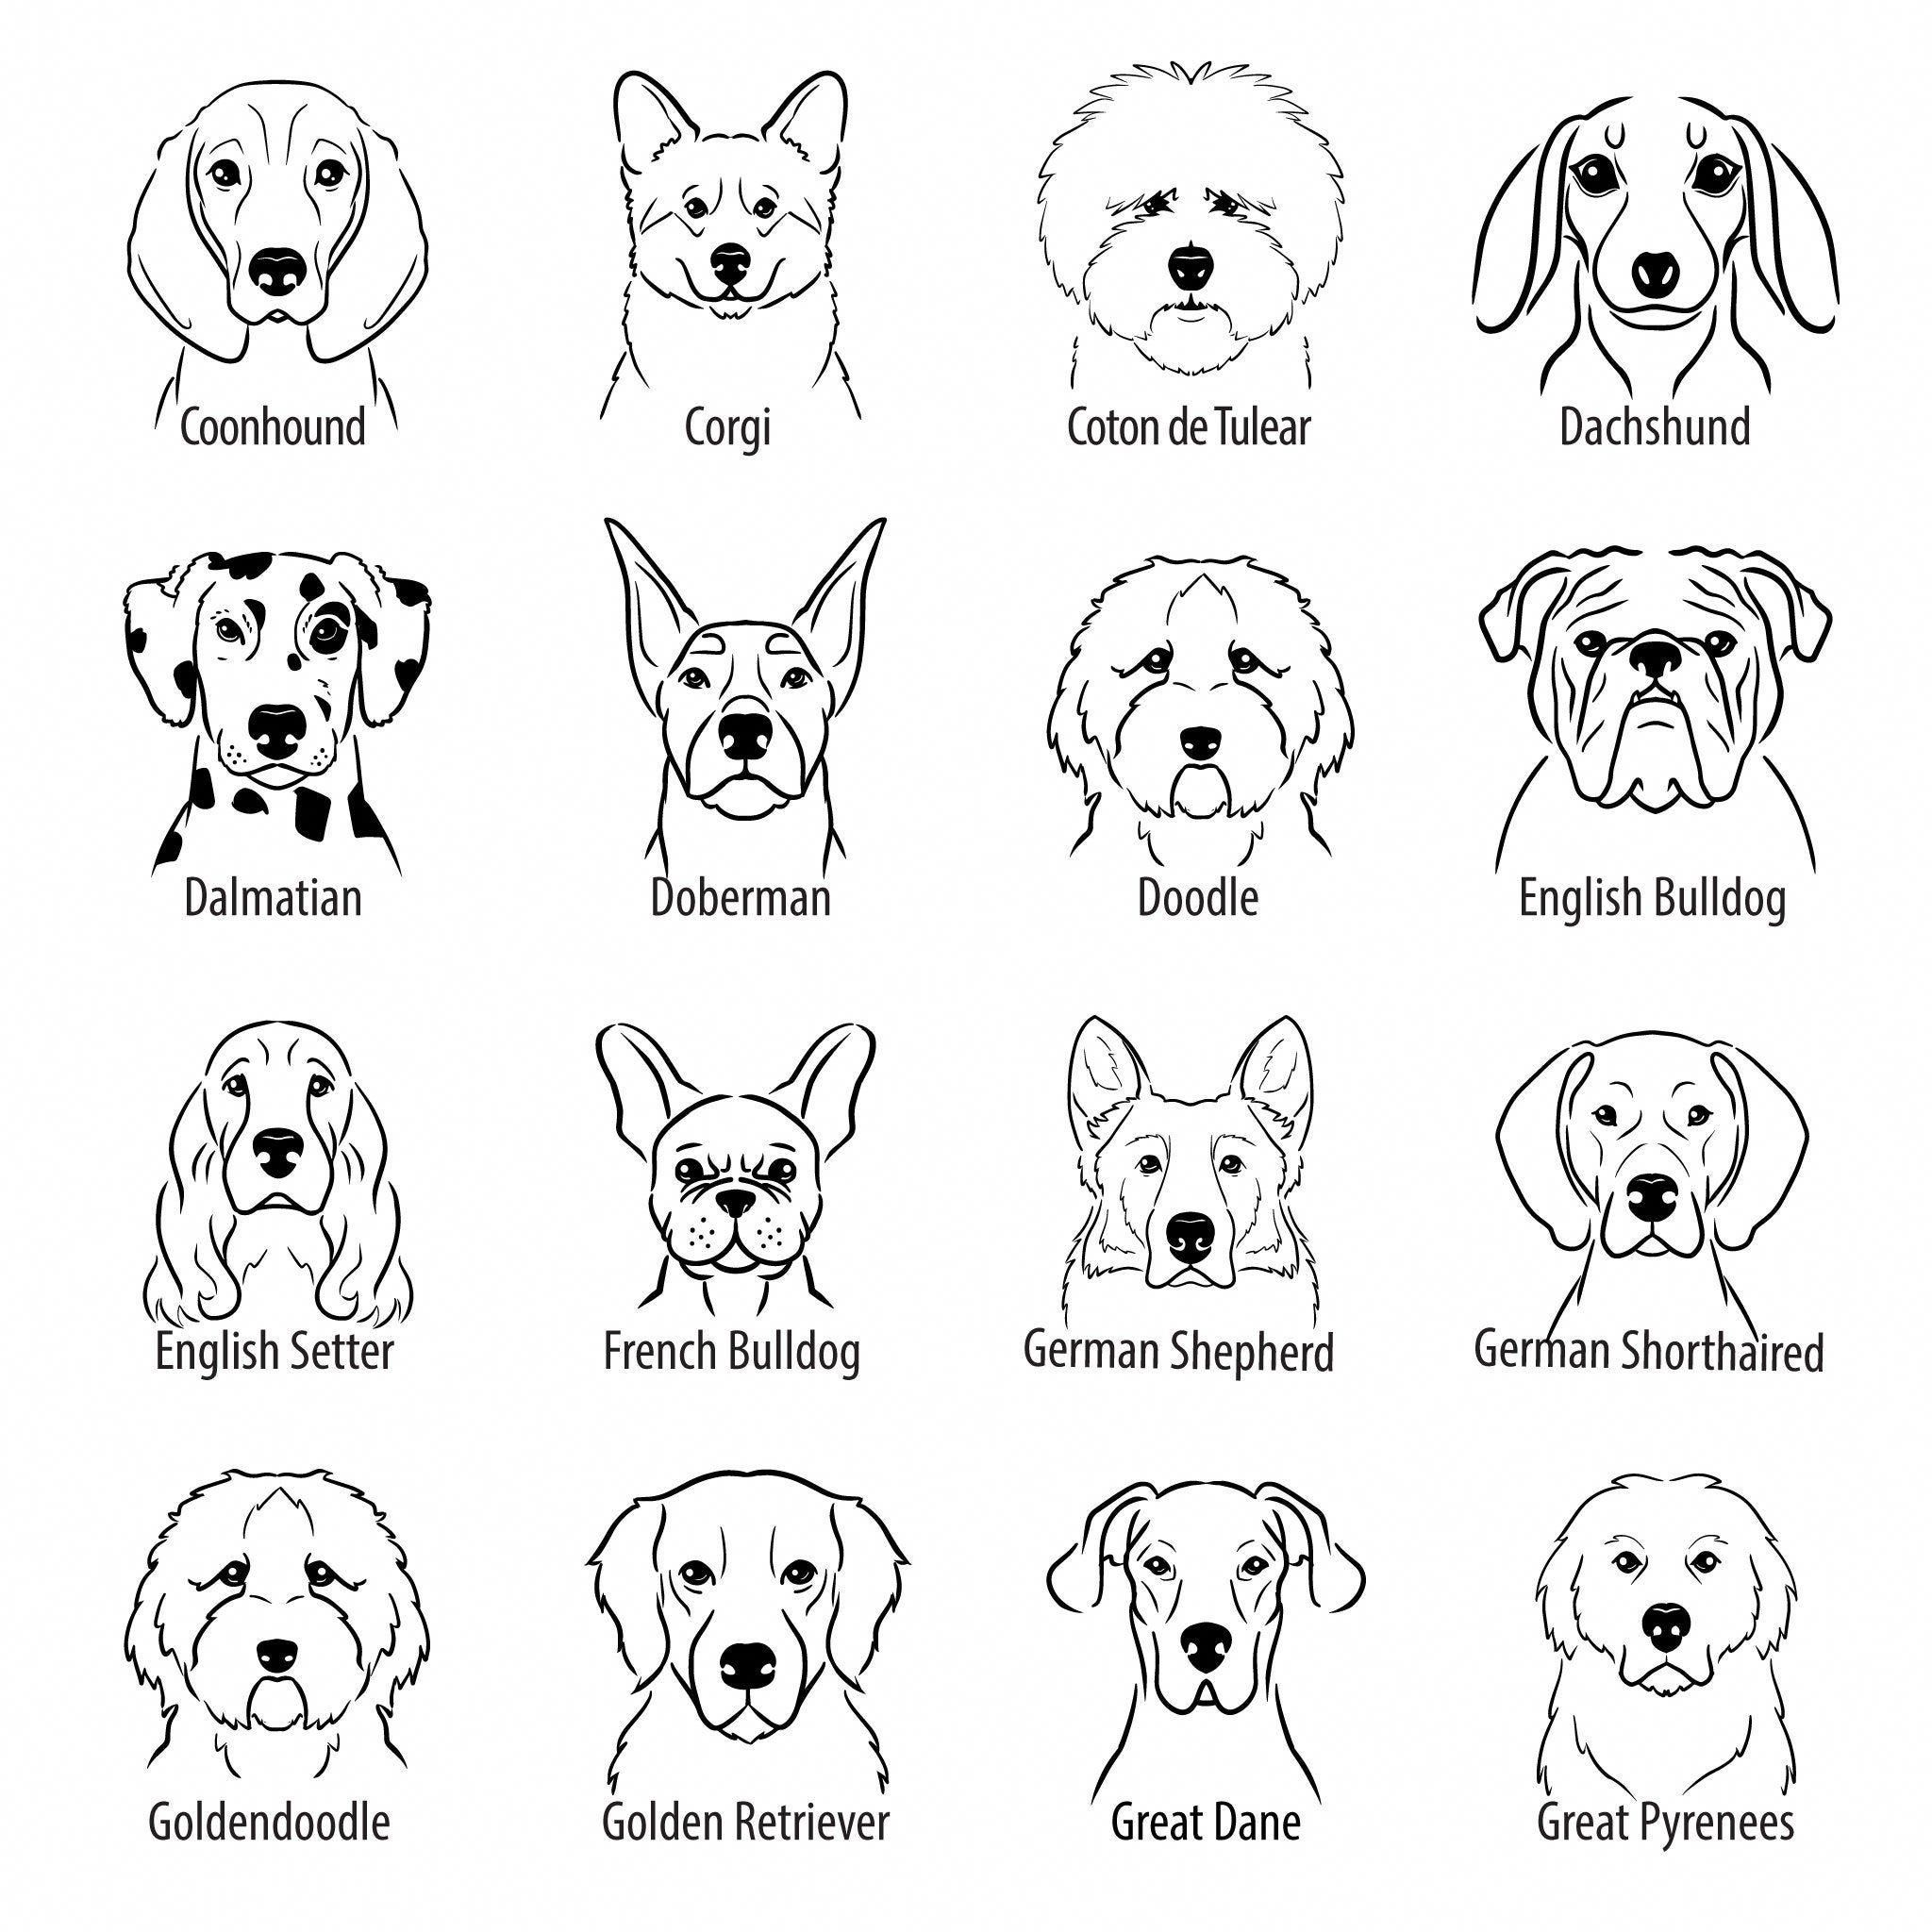 Dogtattooportrait In 2020 Small Dog Tattoos Dog Face Drawing Dog Tattoos